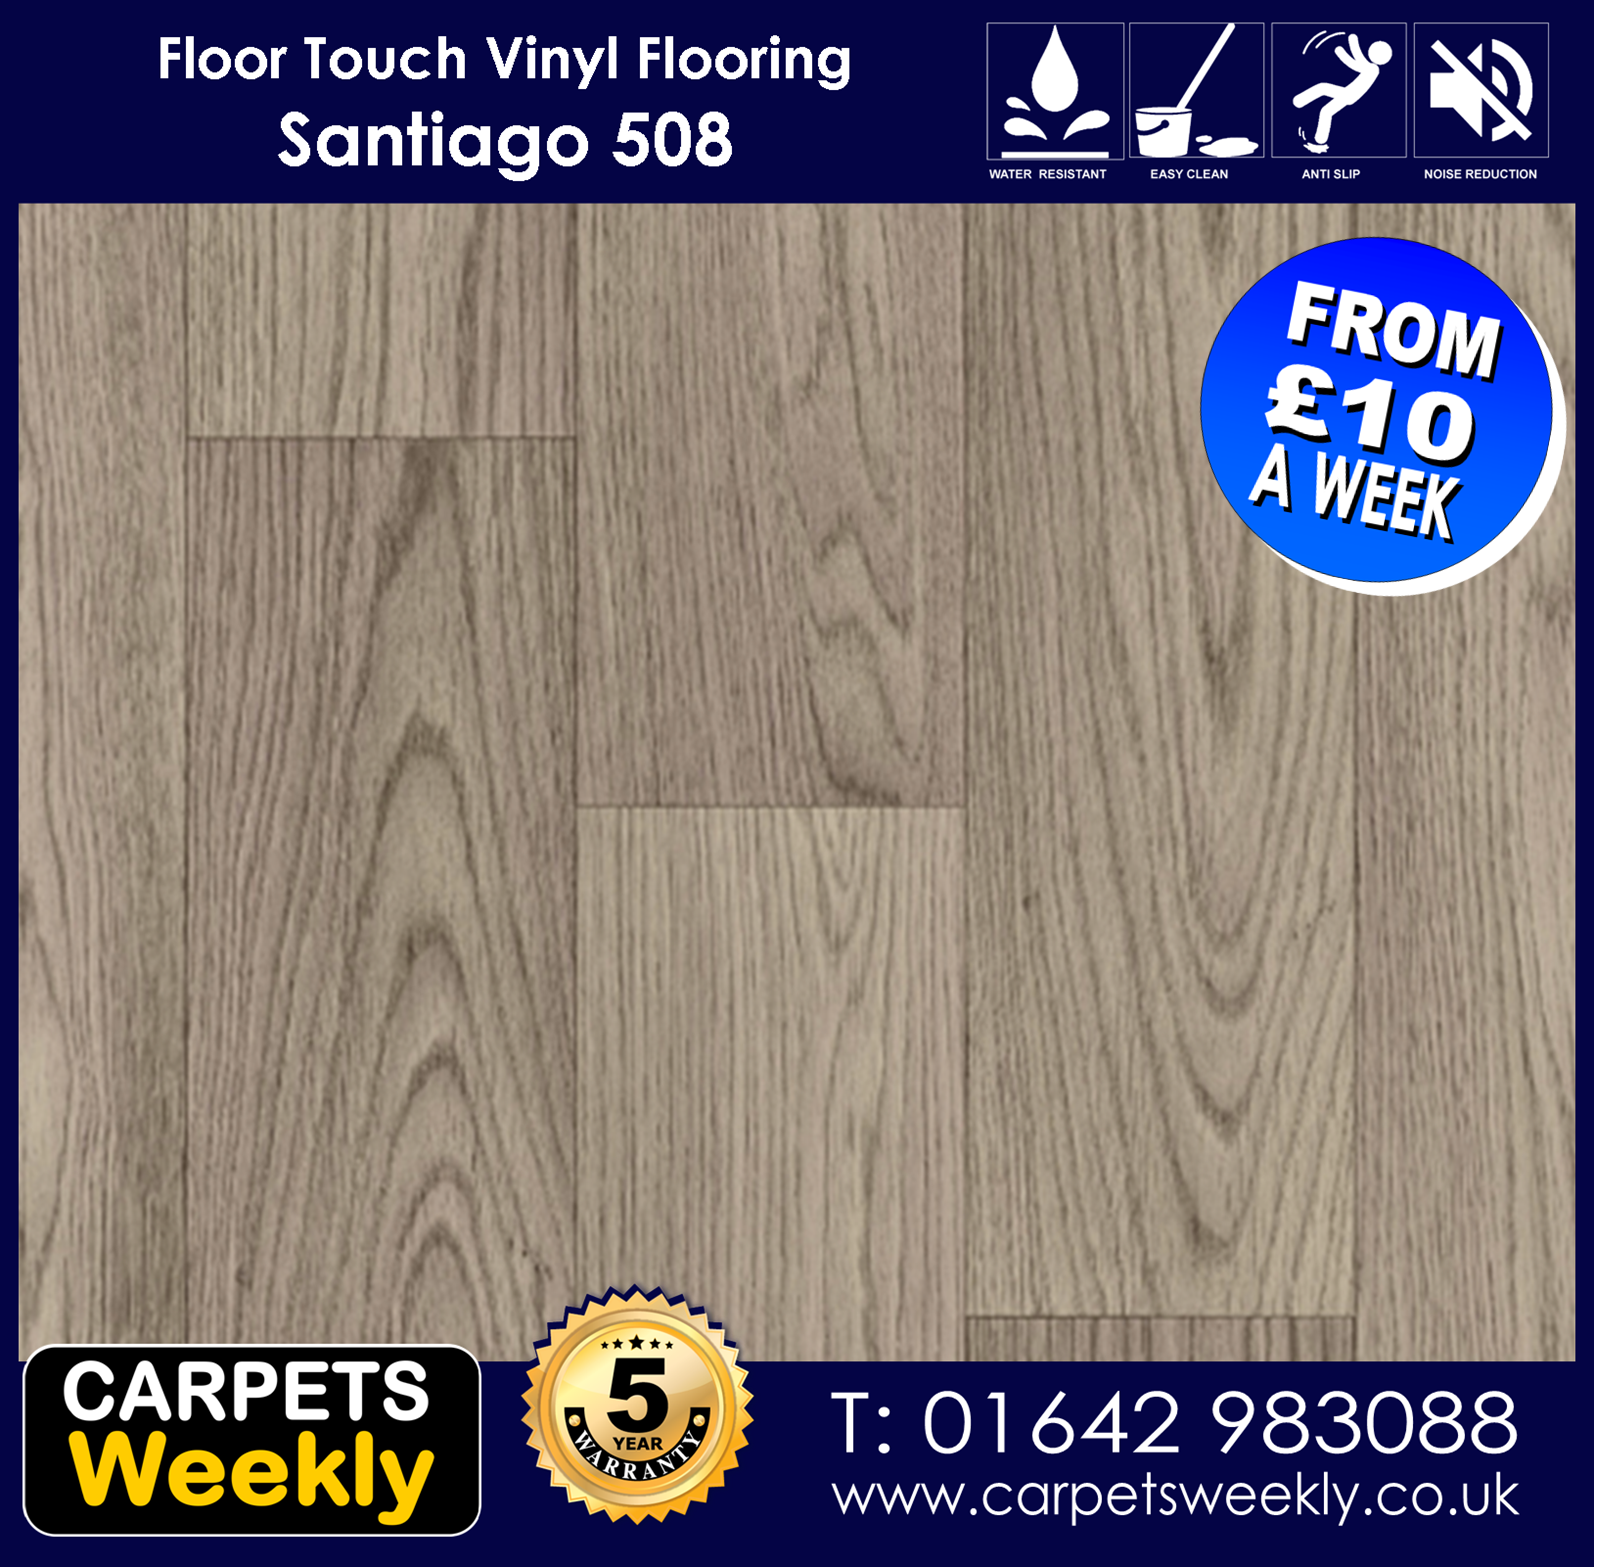 Santiago 508 Vinyl Flooring by Floor Touch from Carpets Weekly